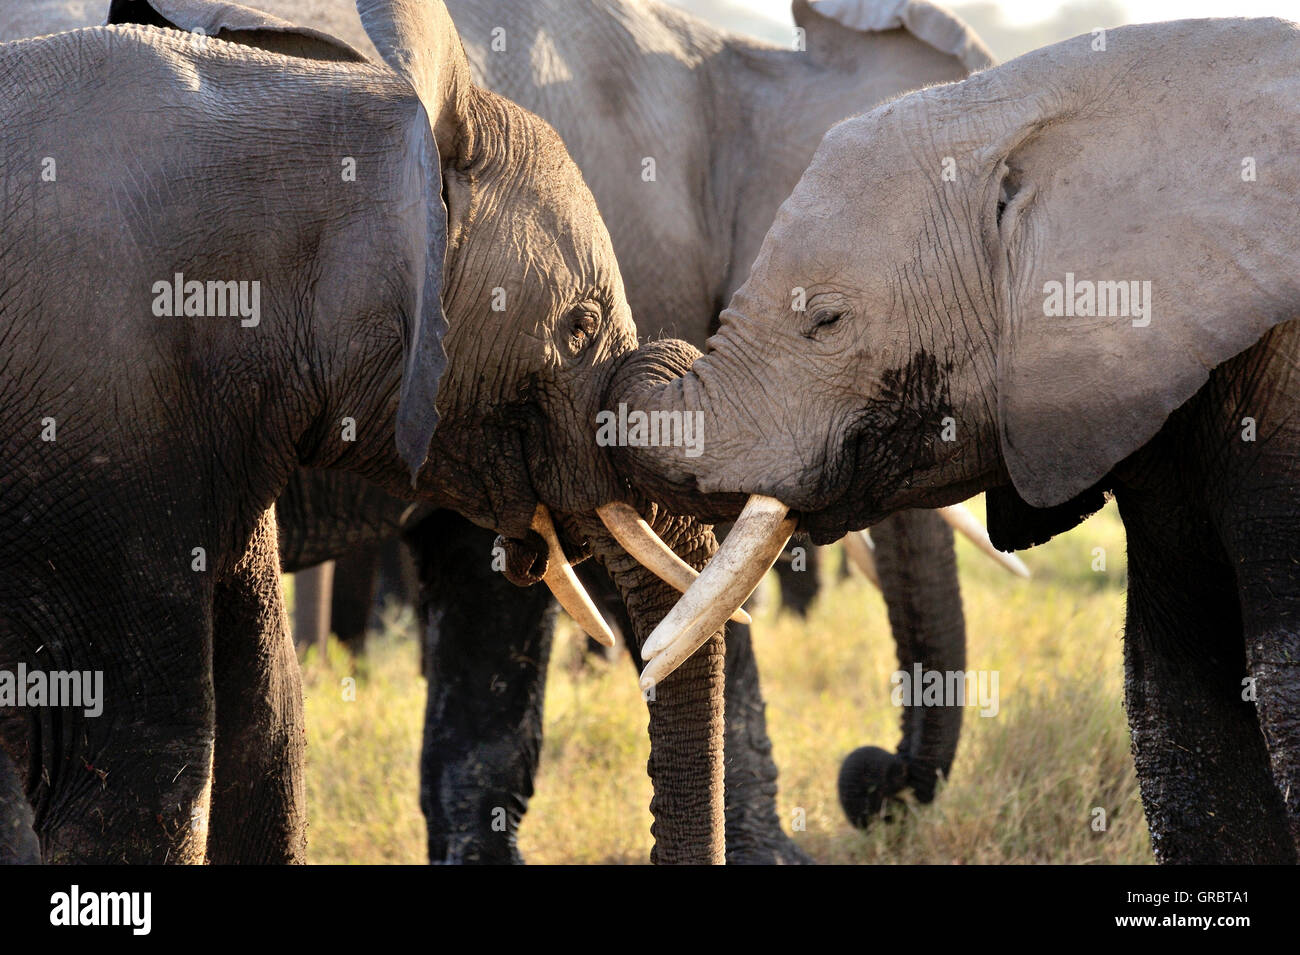 Playful And Tenderly Young Elephants In Amboseli National Parc Stock Photo